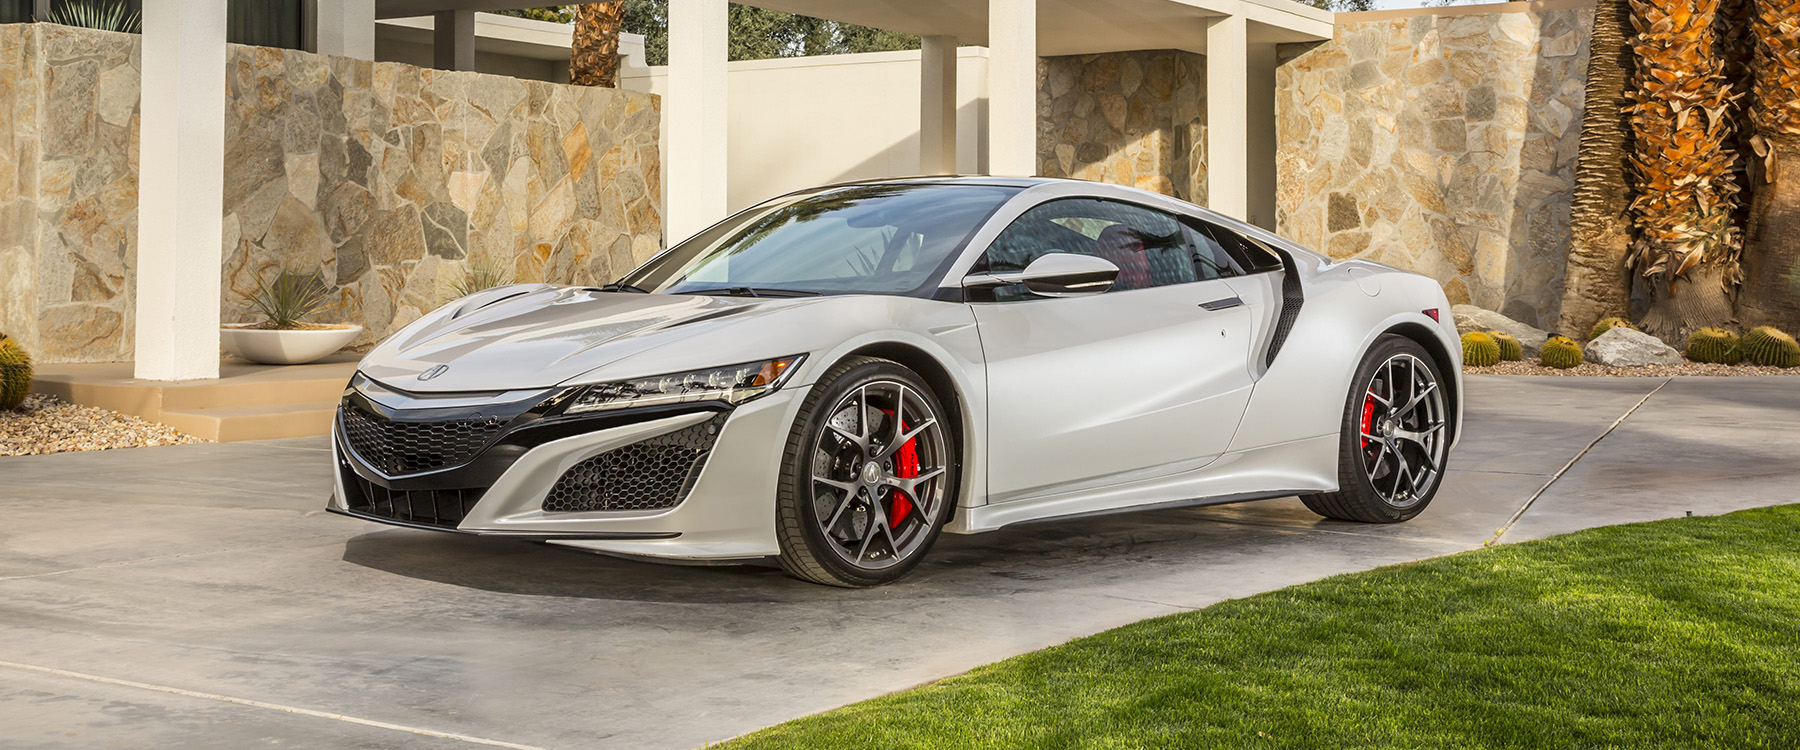 The Acura Nsx Is One Of The Best Luxury Sports Cars